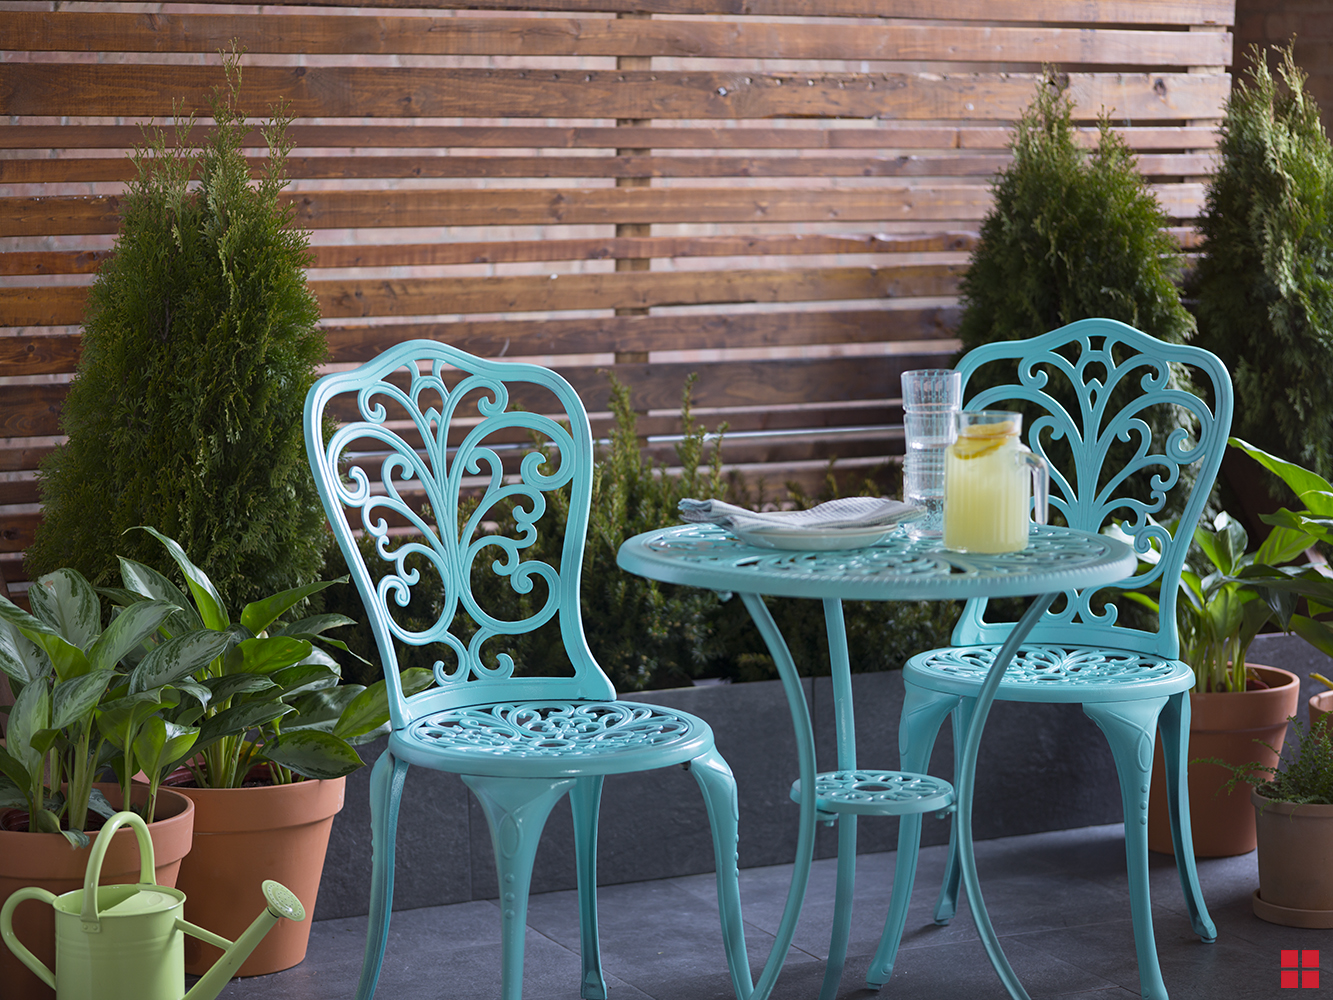 Refinish Outdoor Bistro Table With Stops Rust